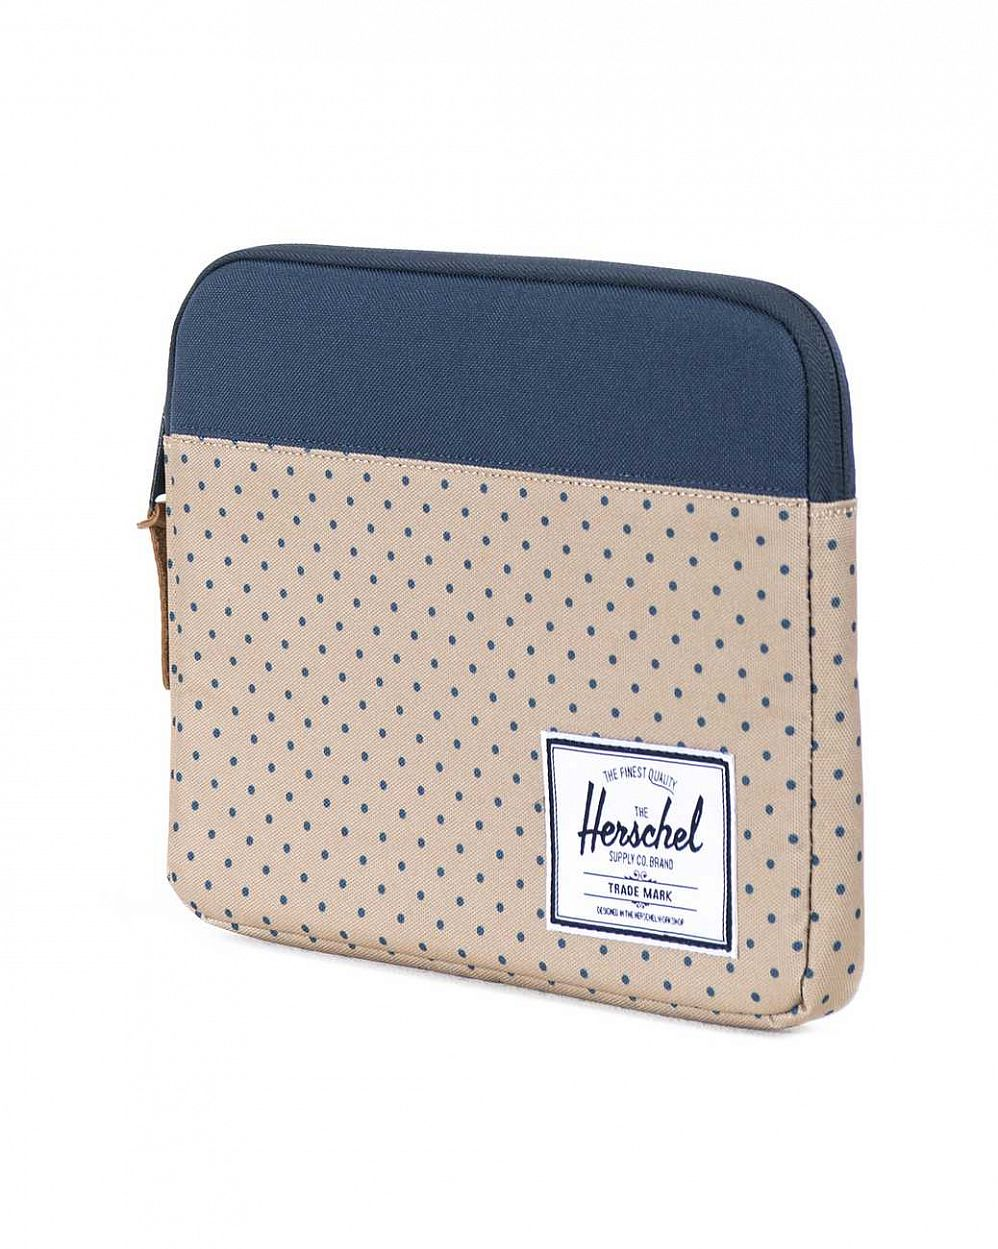 Чехол Herschel Anchor Sleeve для iPad Khaki Polka Dot Navy цена в Москве